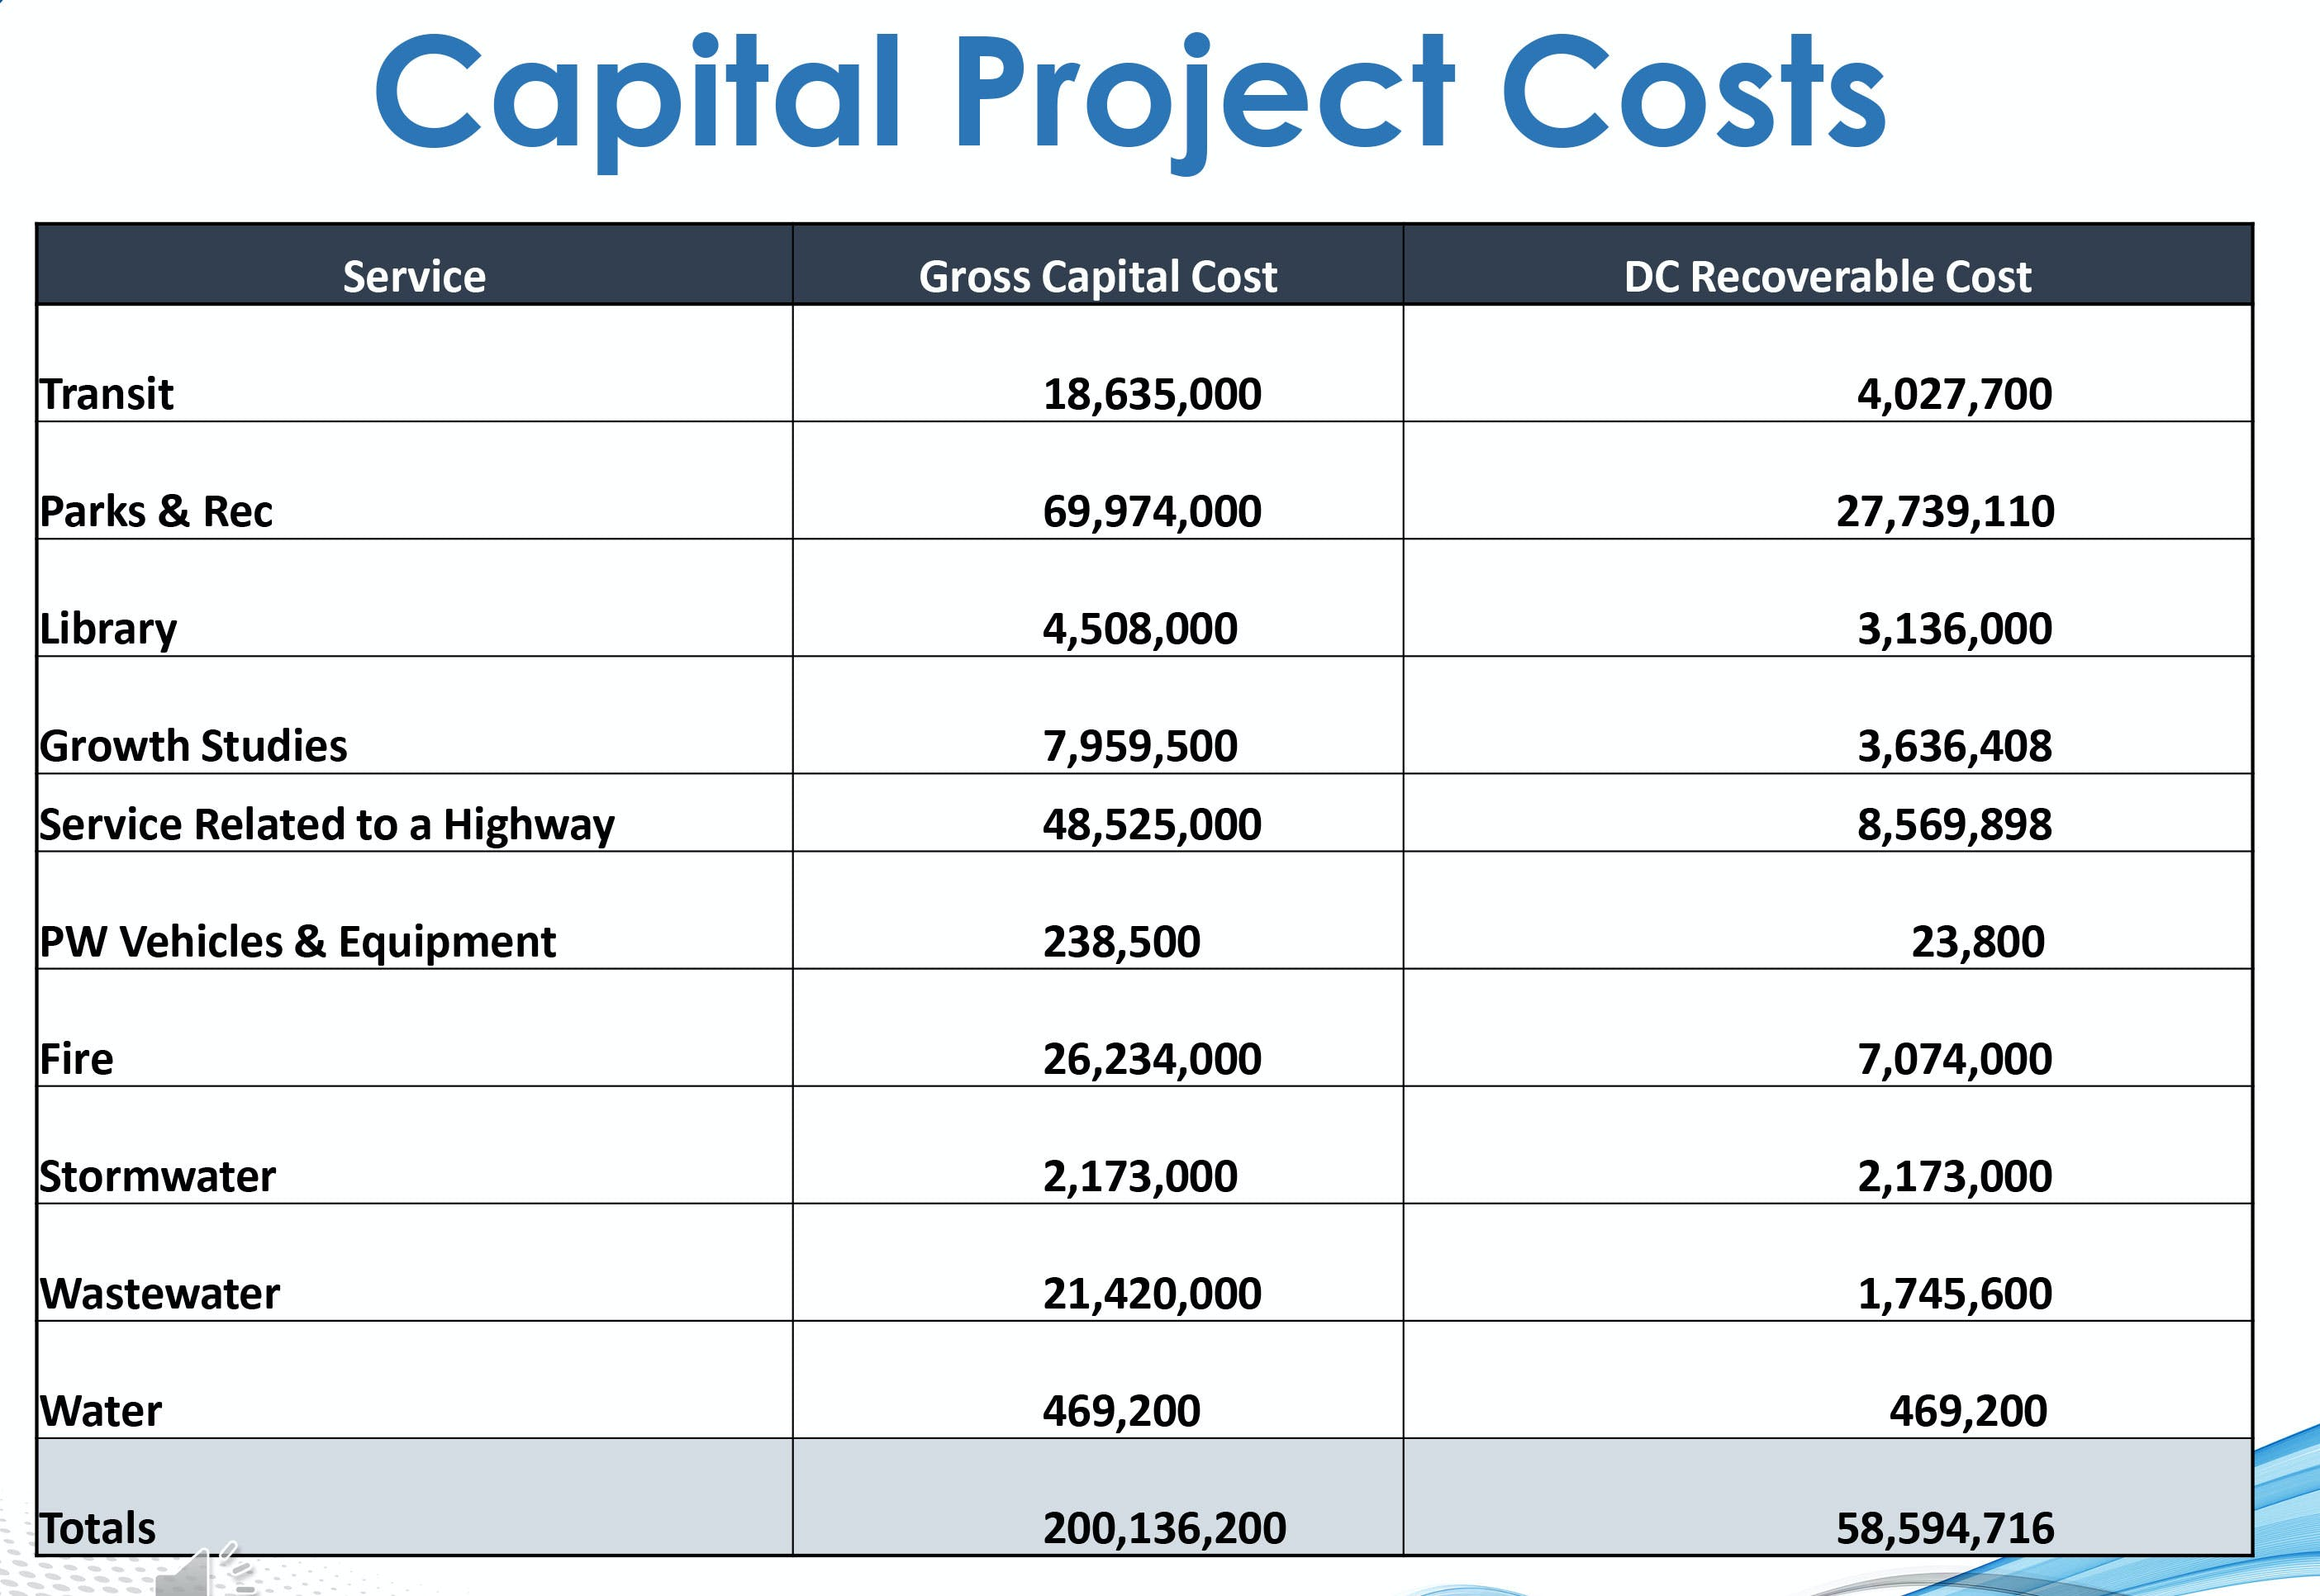 Capital Project Costs